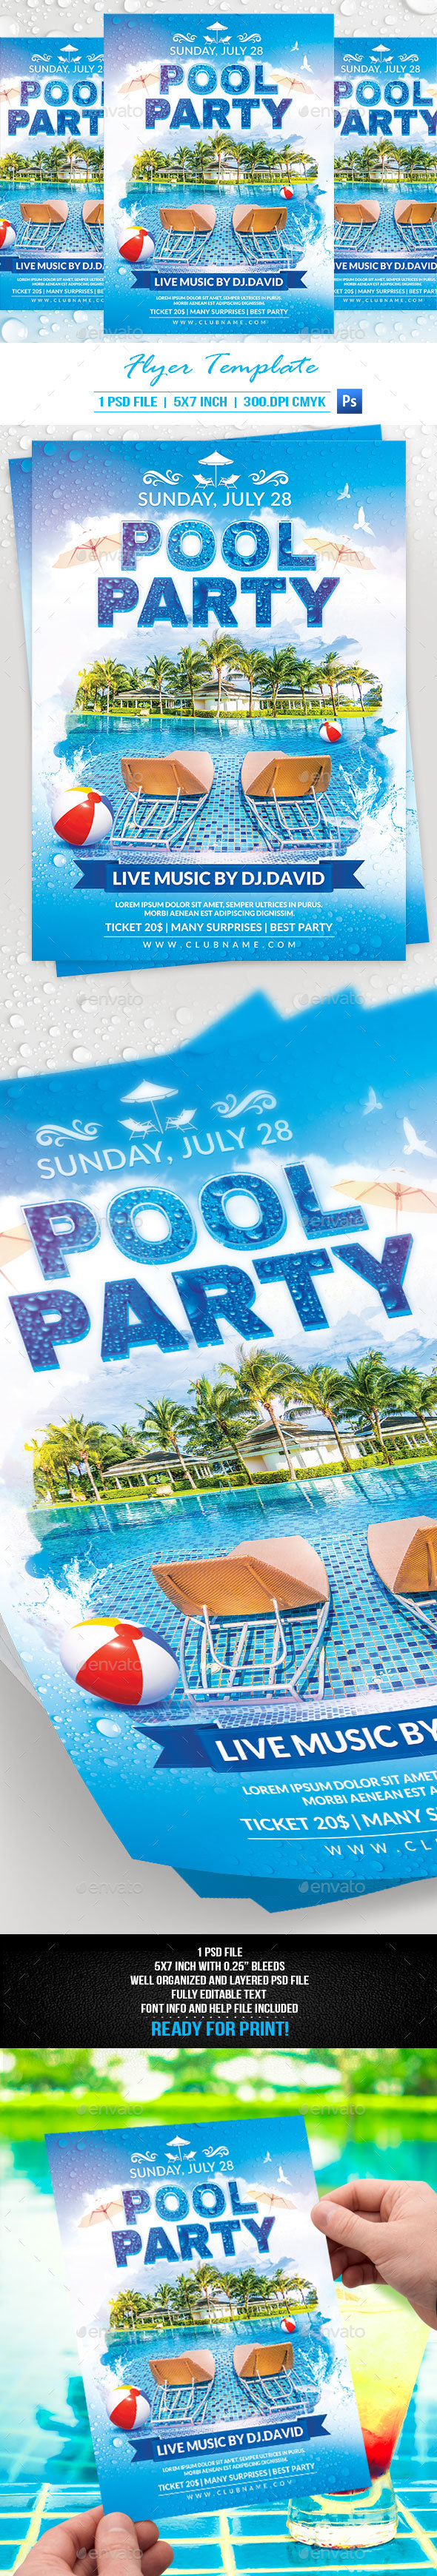 Pool Party Flyer Template   Events Flyers